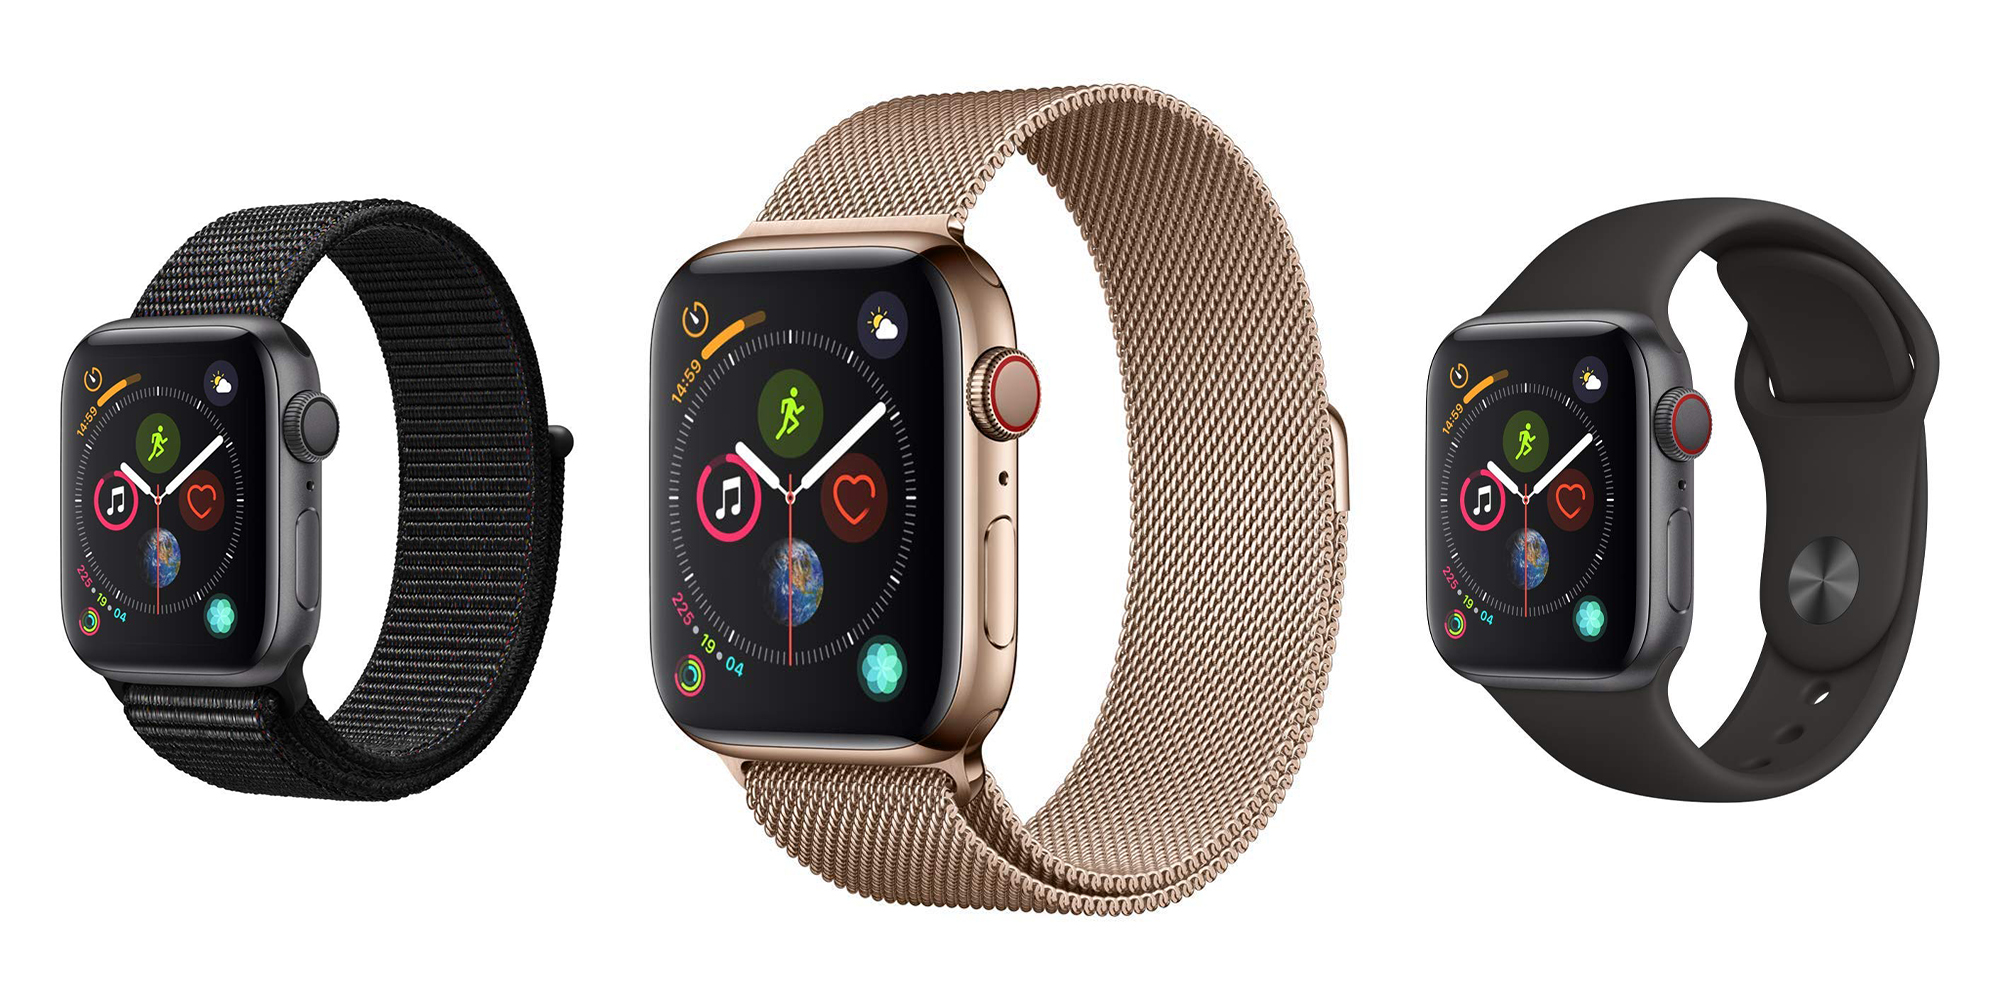 Apple Watch Series 4 up to $50 off at various retailers: Deals on GPS, cellular, more from $384